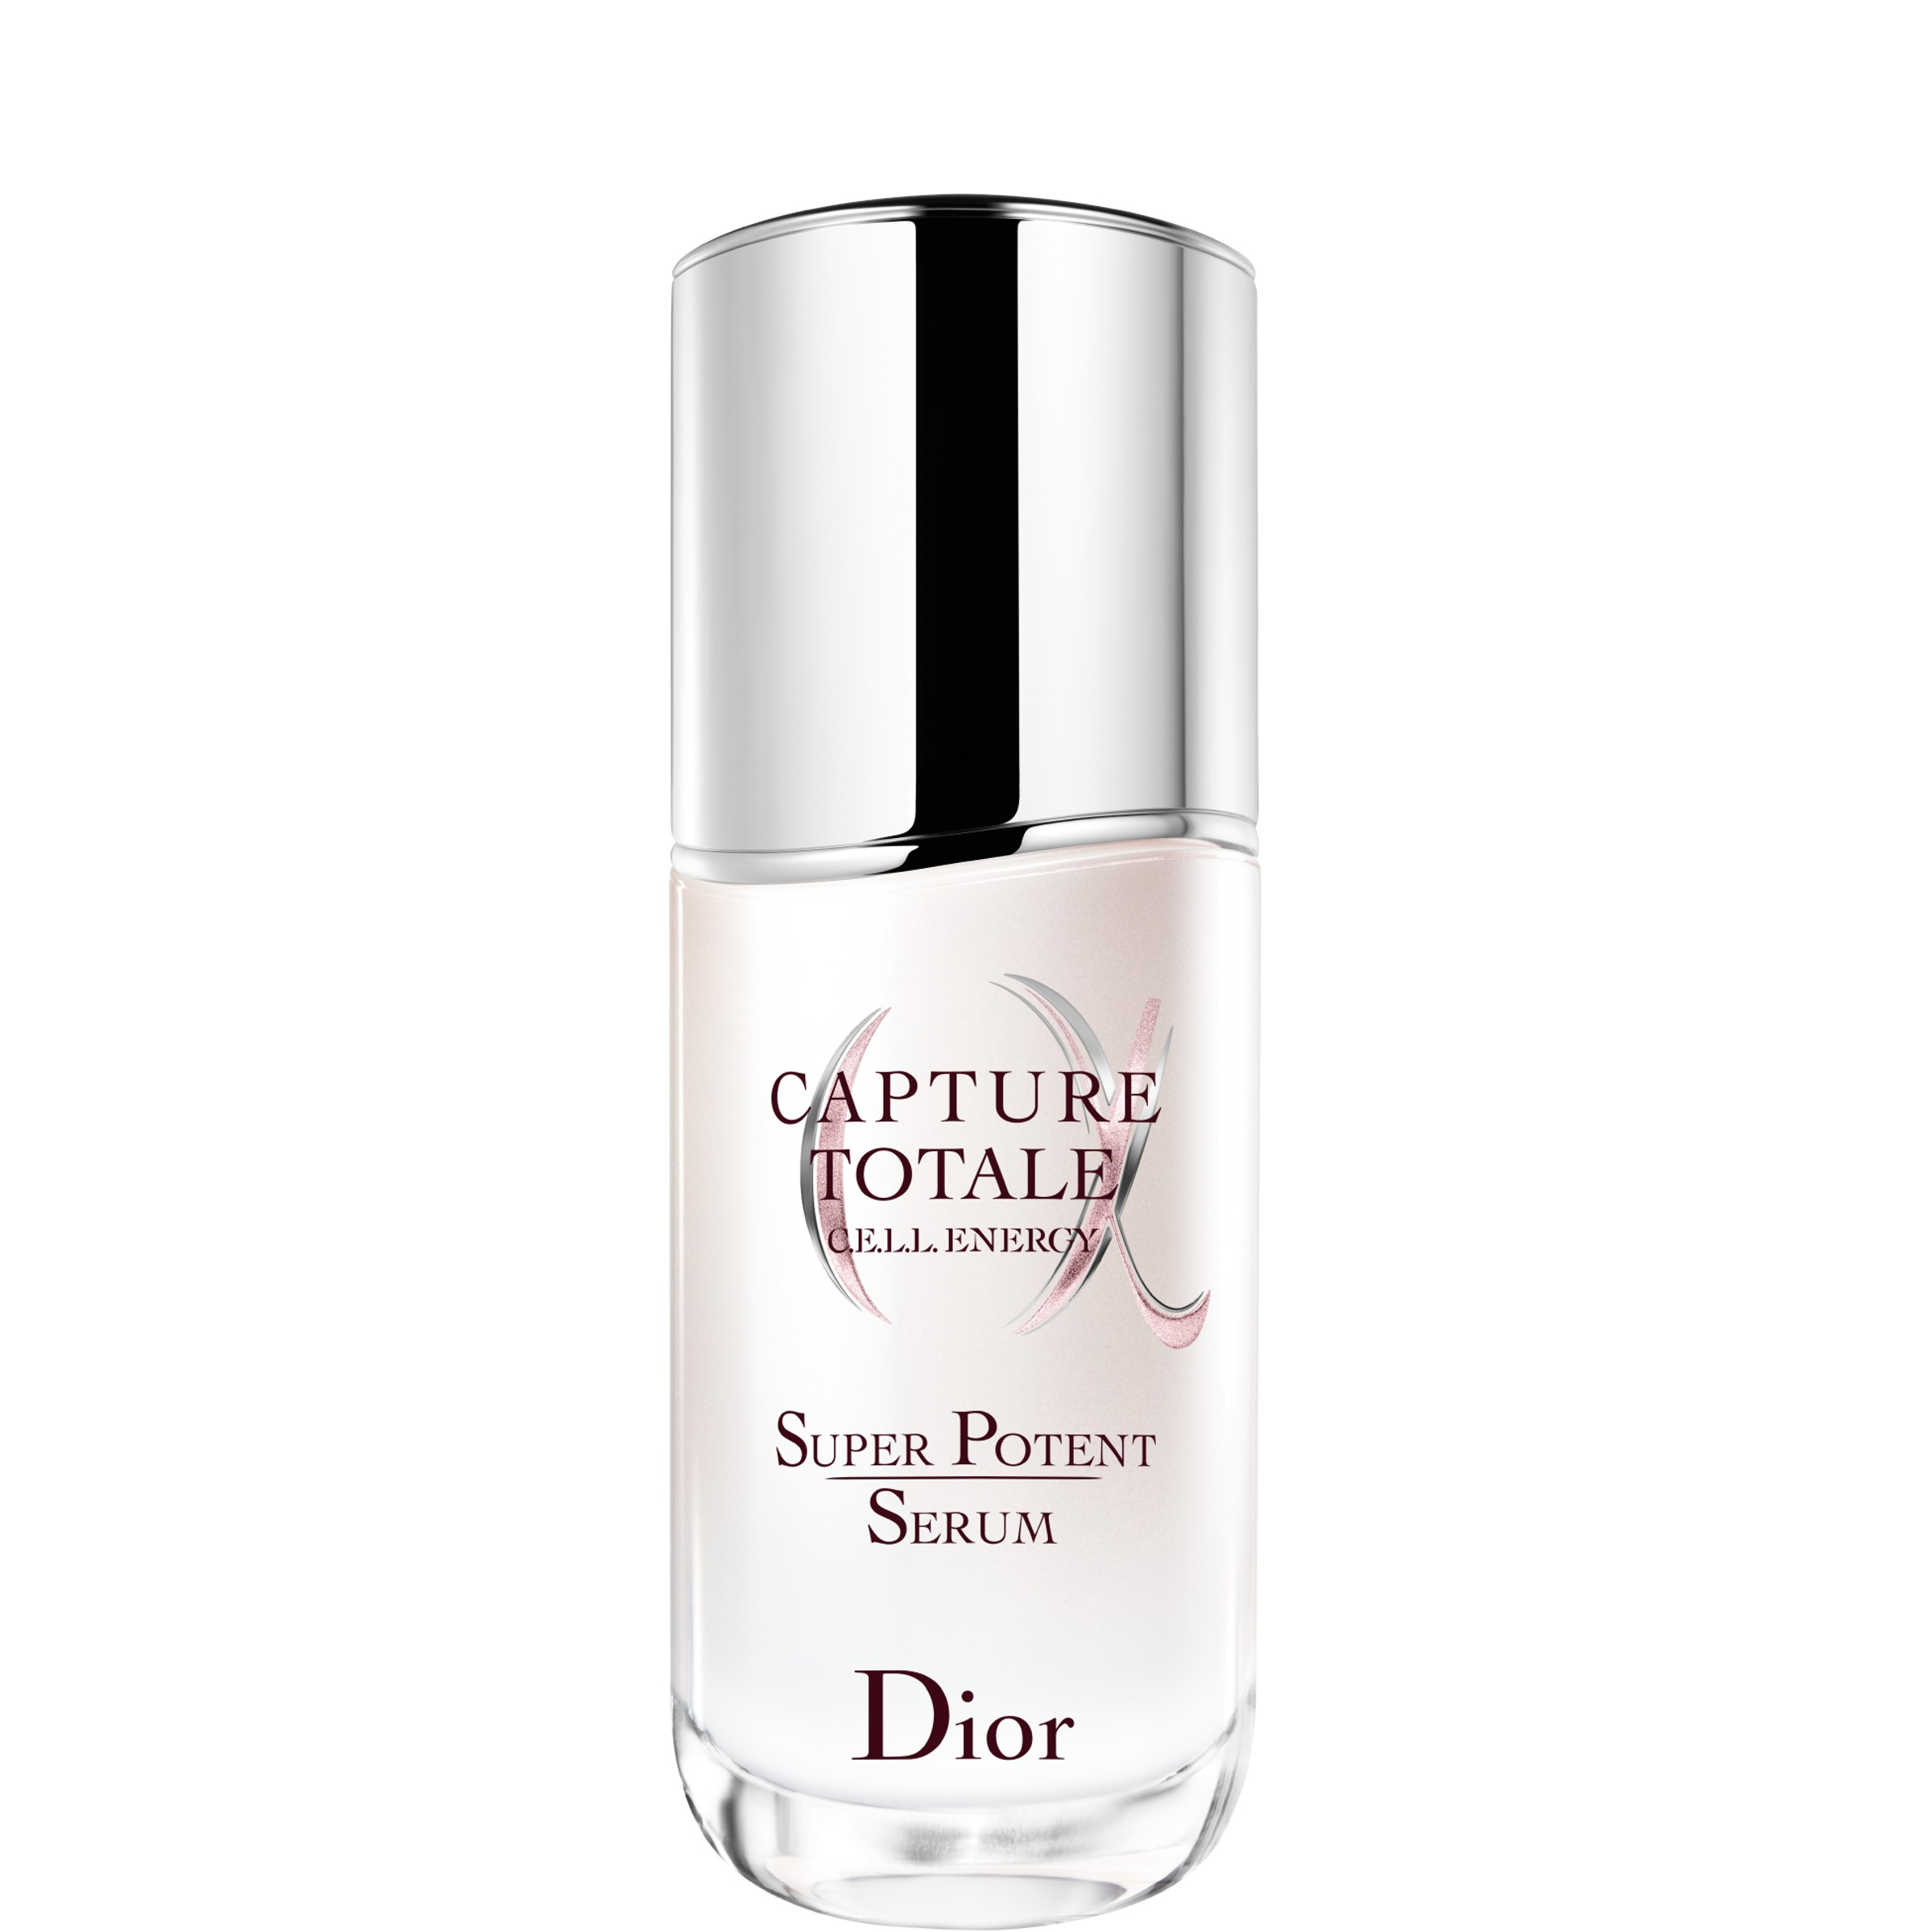 Dior Capture Totale C.E.L.L. ENERGY- Super Potent Age-Defying Intense Serum